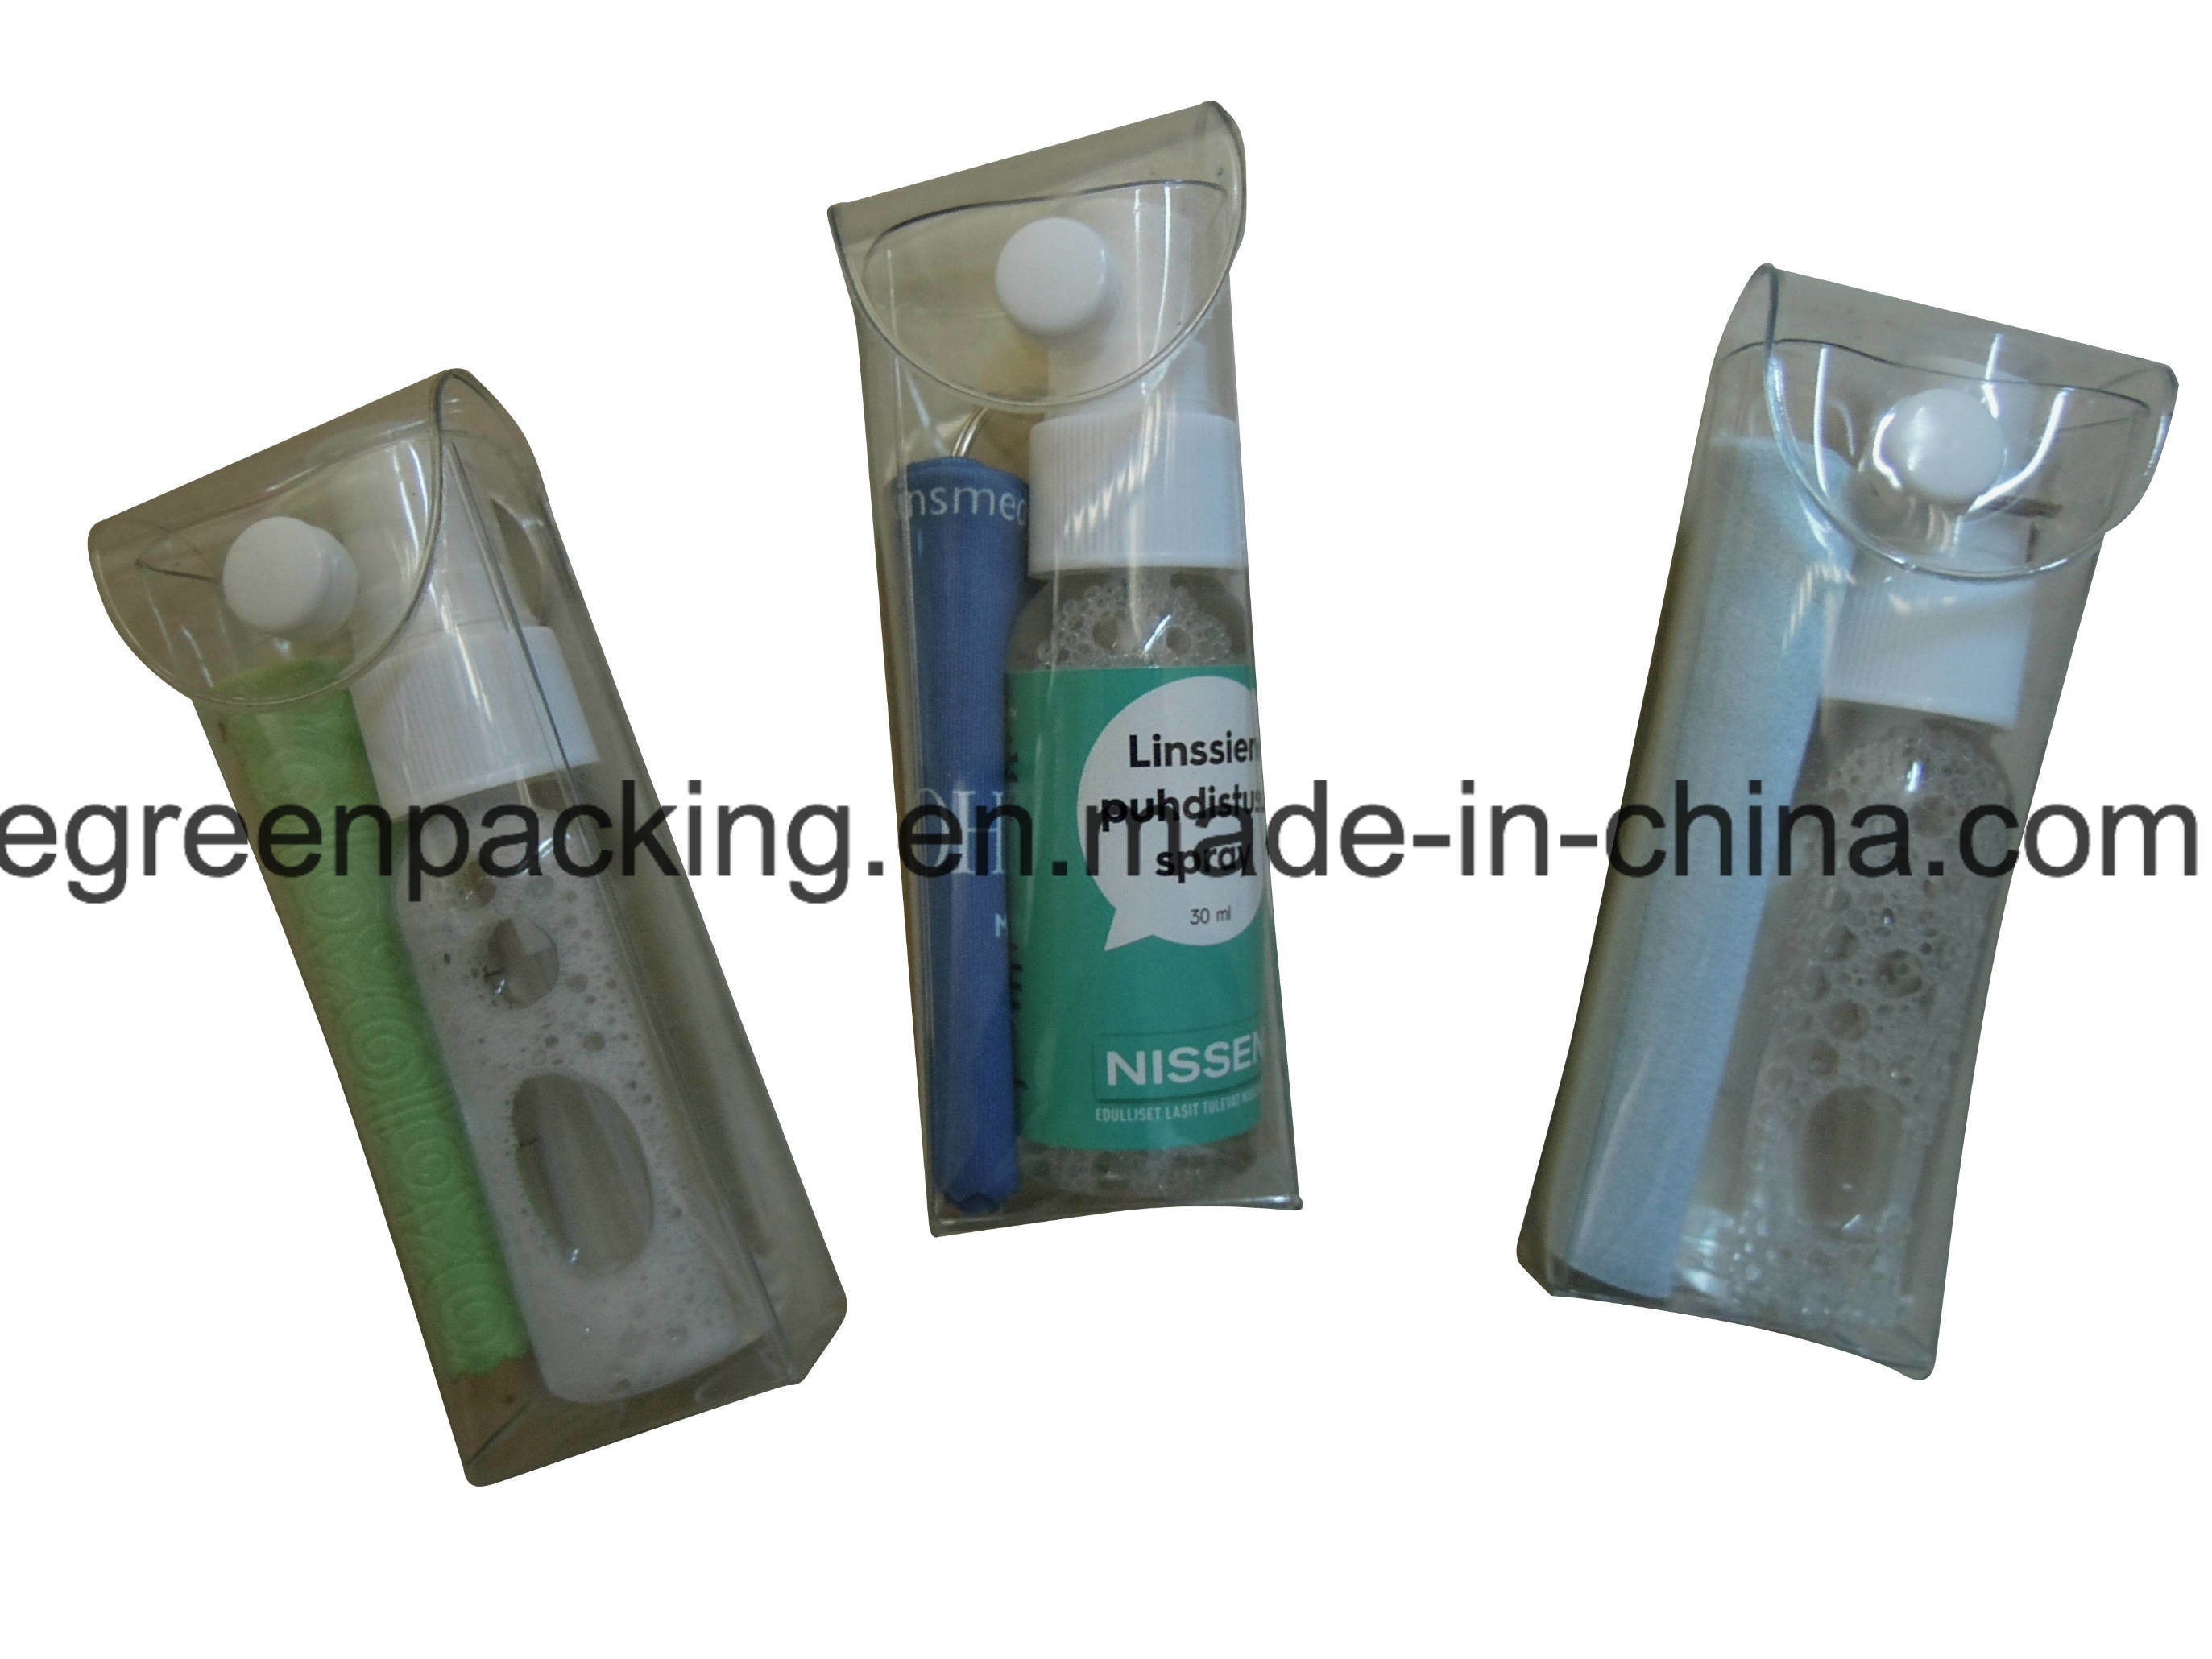 Pet Bottle Lens Spray/Microfiber Cloth/Screw Driver Packing in PVC Pouch